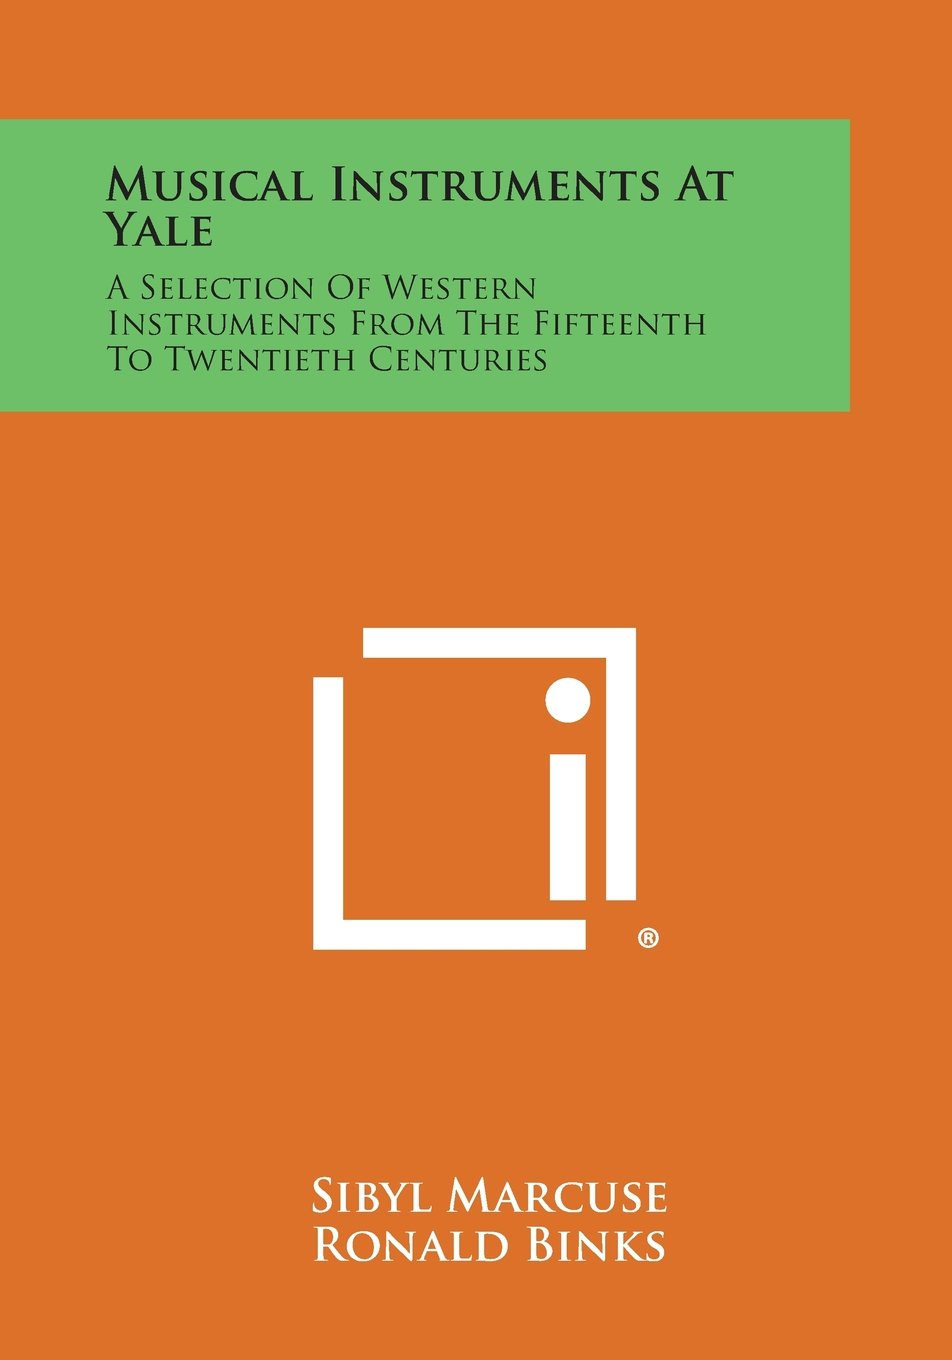 Read Online Musical Instruments at Yale: A Selection of Western Instruments from the Fifteenth to Twentieth Centuries PDF